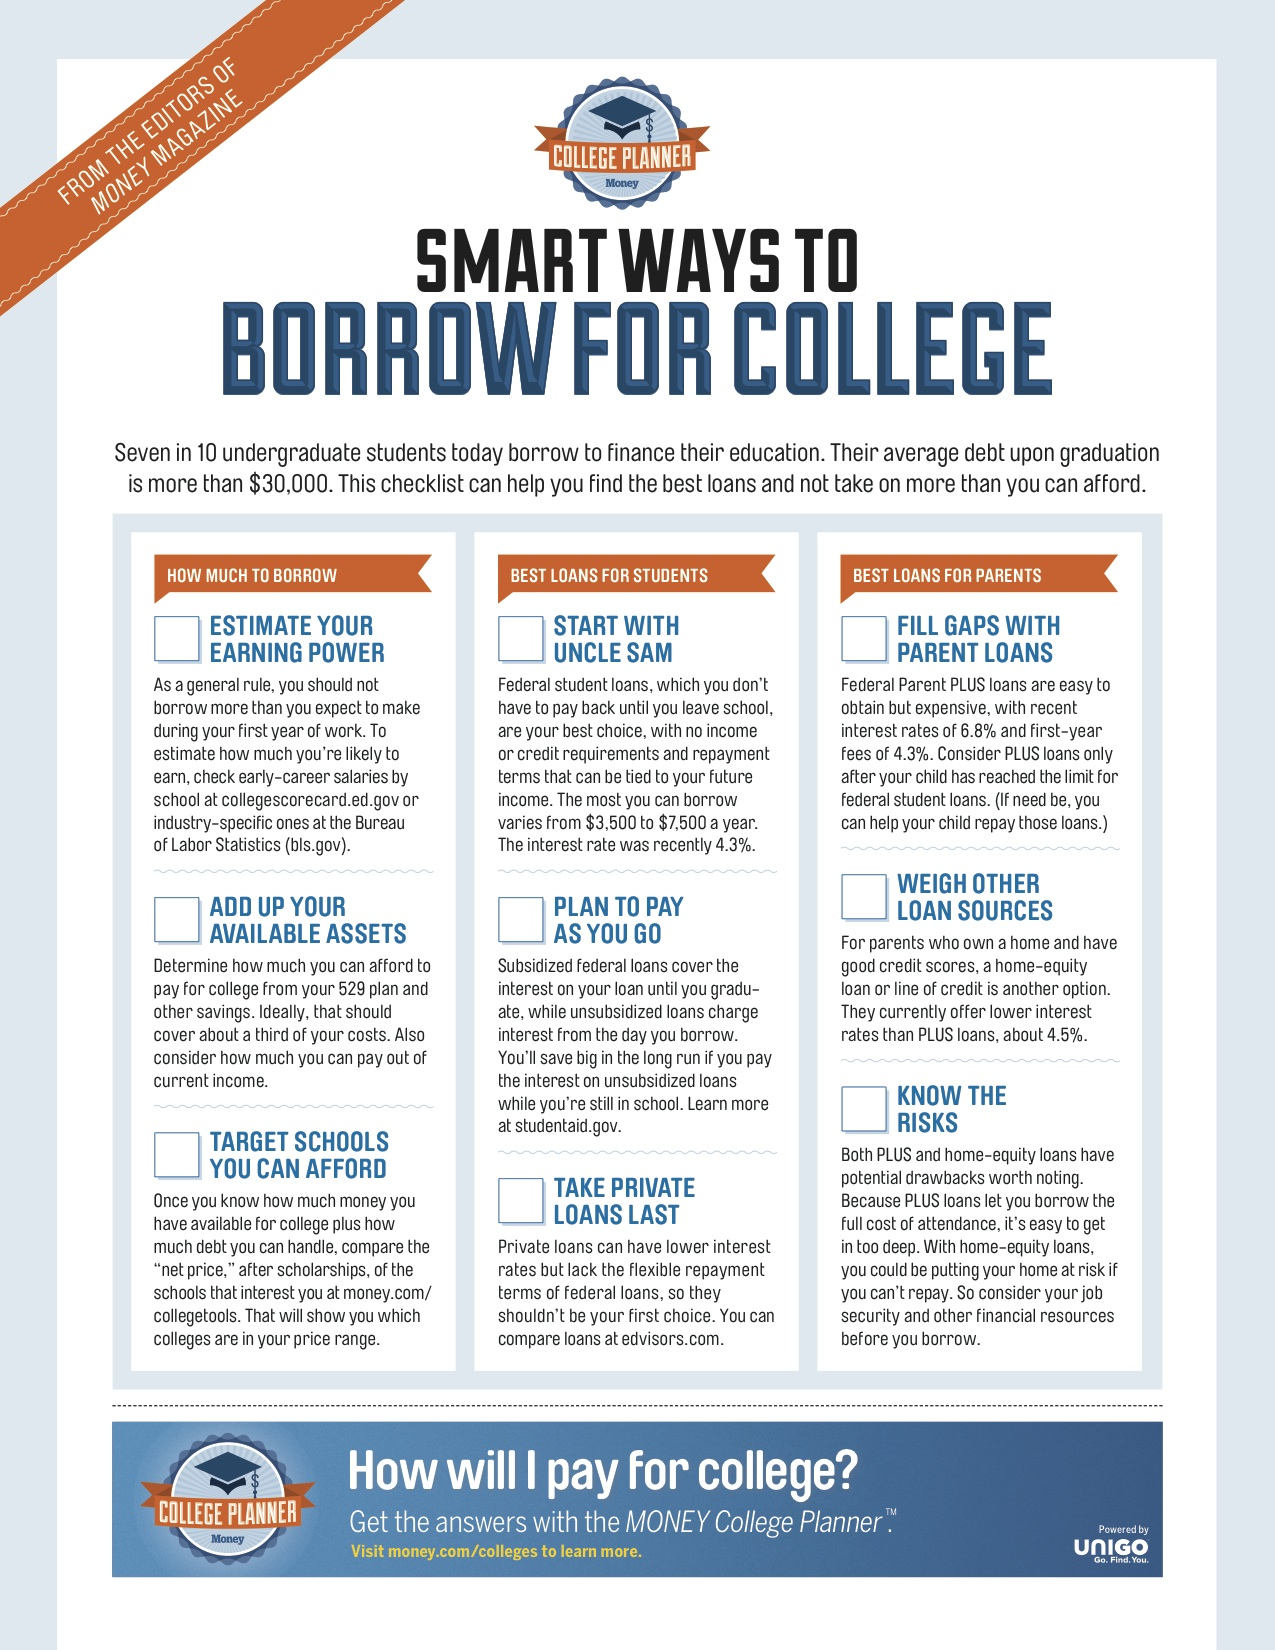 Money_CollegePlanner-Checklist3-Borrowing-FINAL